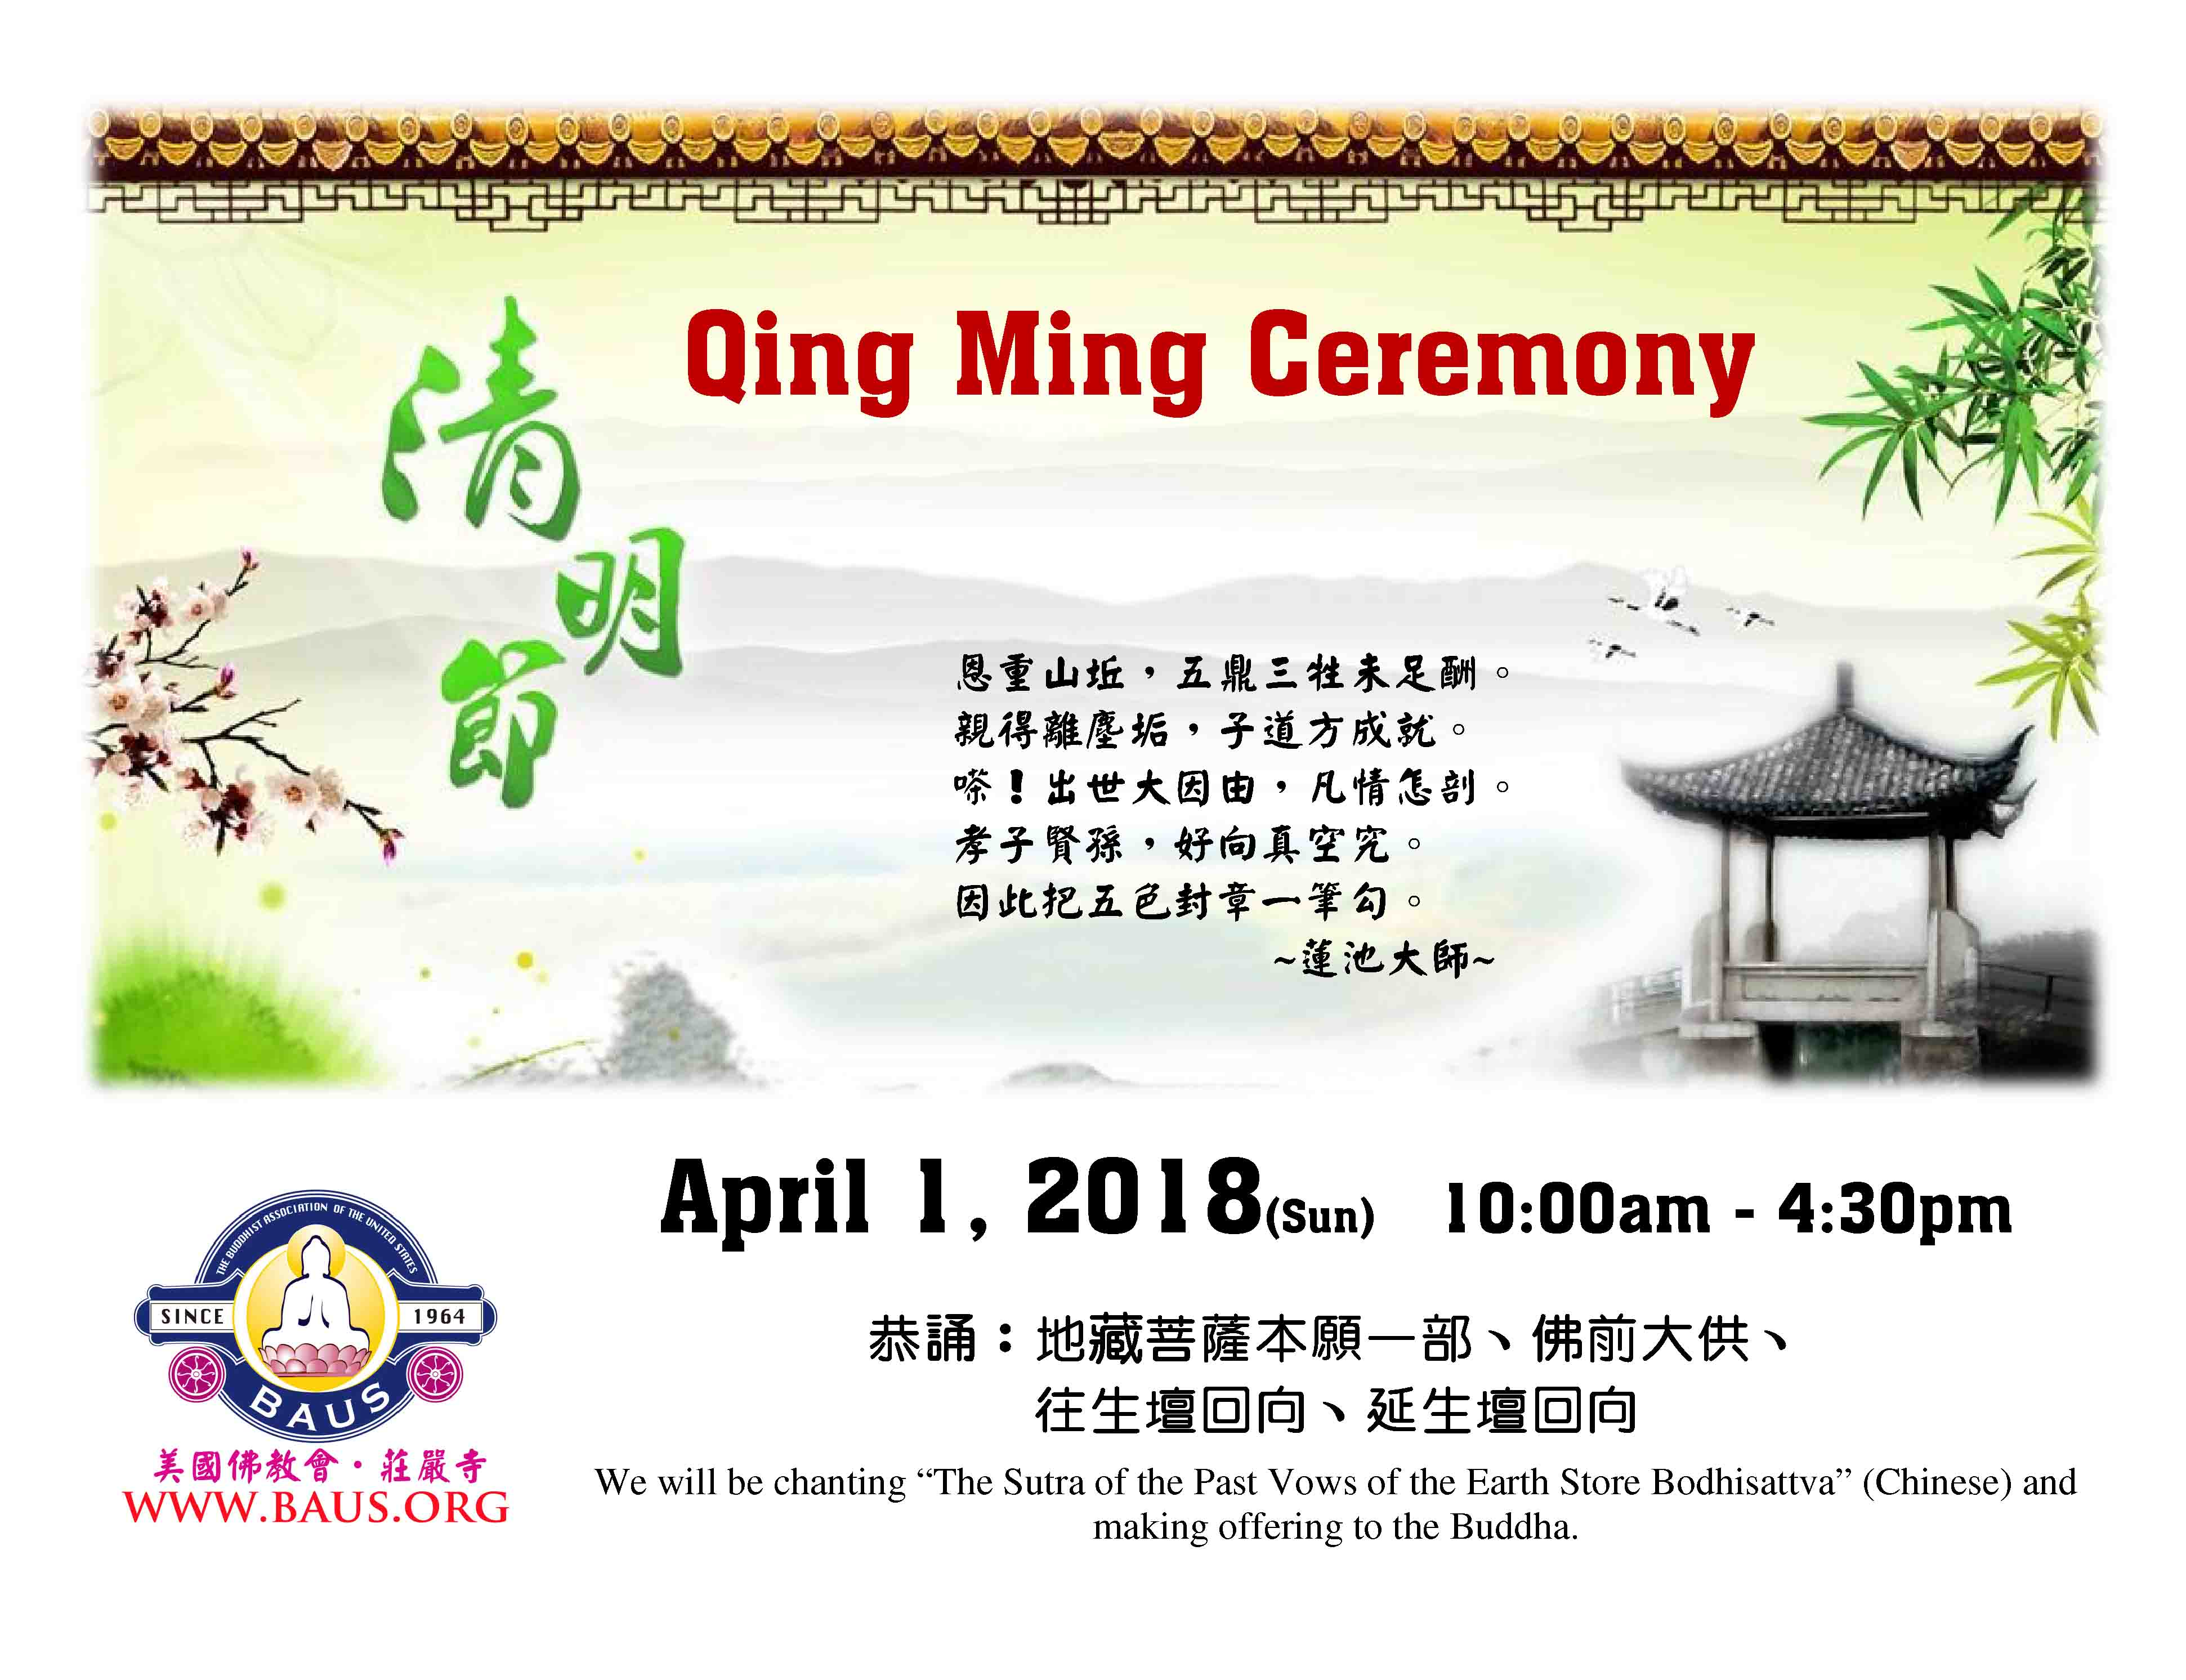 Qing Ming Ceremony(4/1/2018)